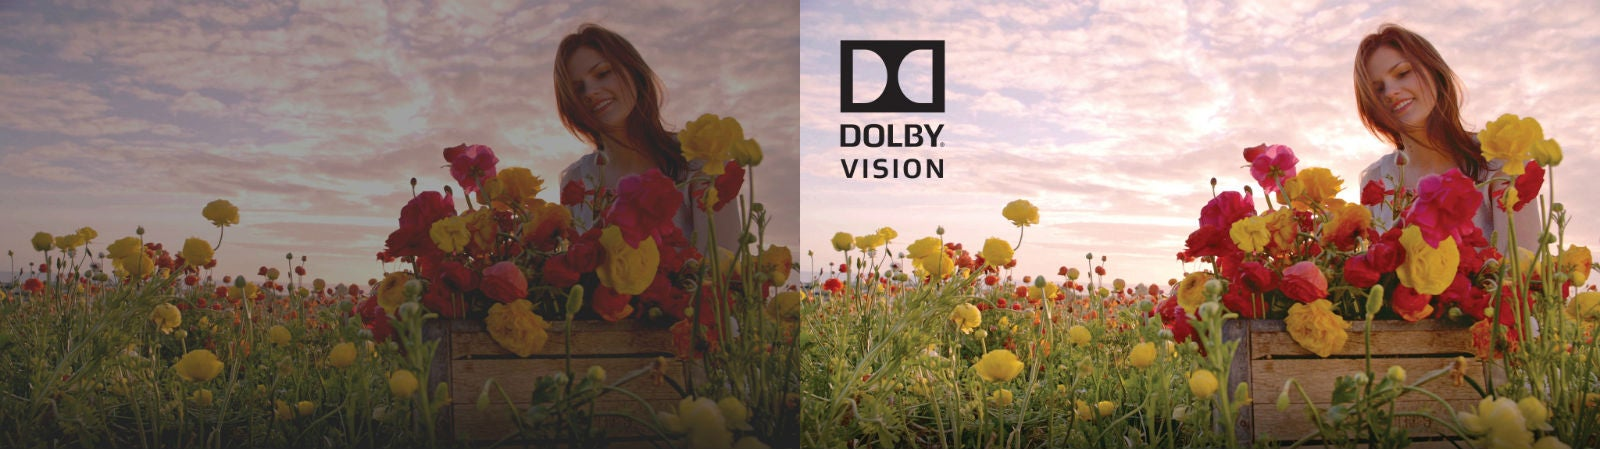 How Dolby Vision Works, and How It Could Revolutionise TVs Forever